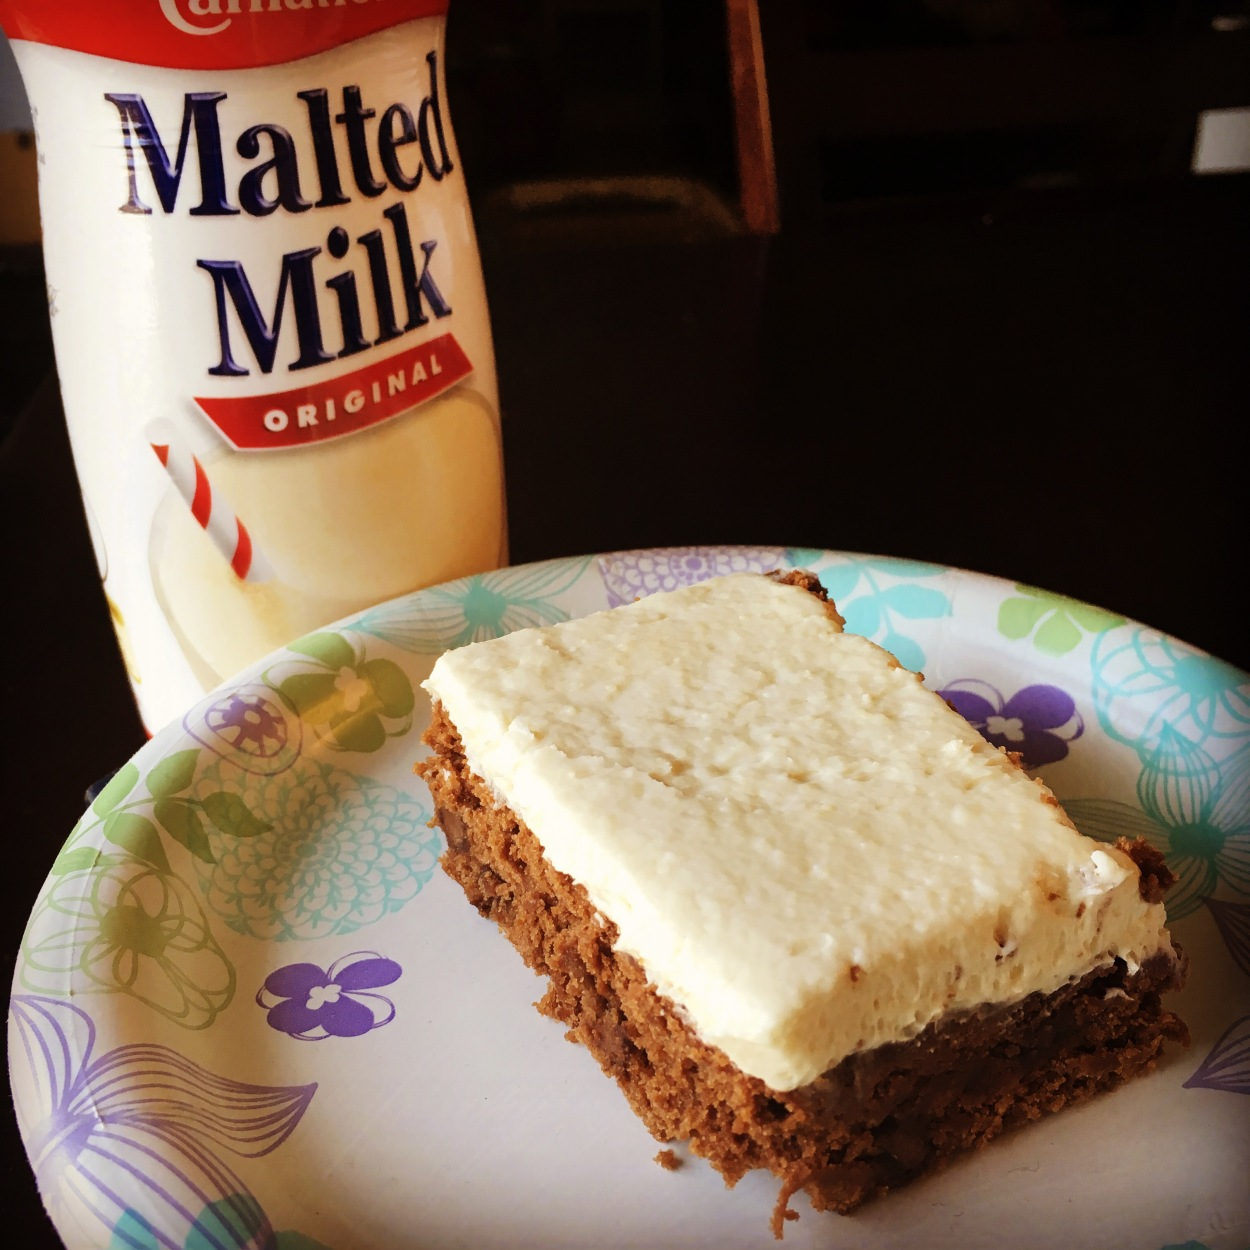 Chocolate malt cake with vanilla malted milk frosting